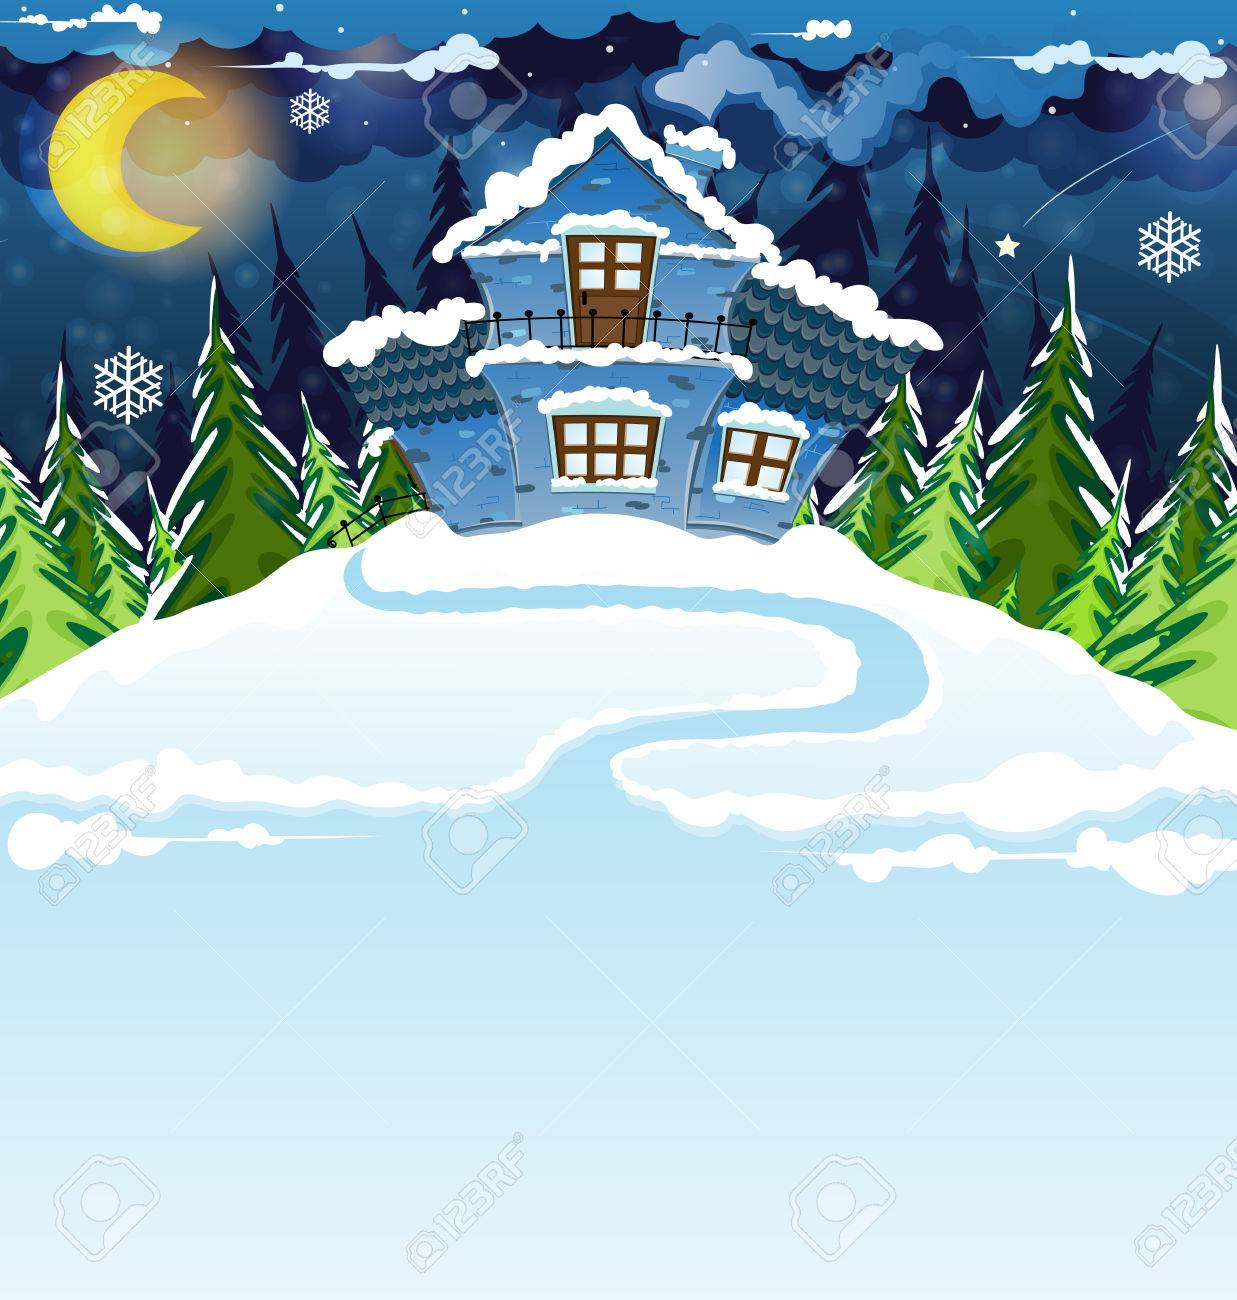 Fairy house with blue tiles in a pine forest. Winter night landscape. - 23768671